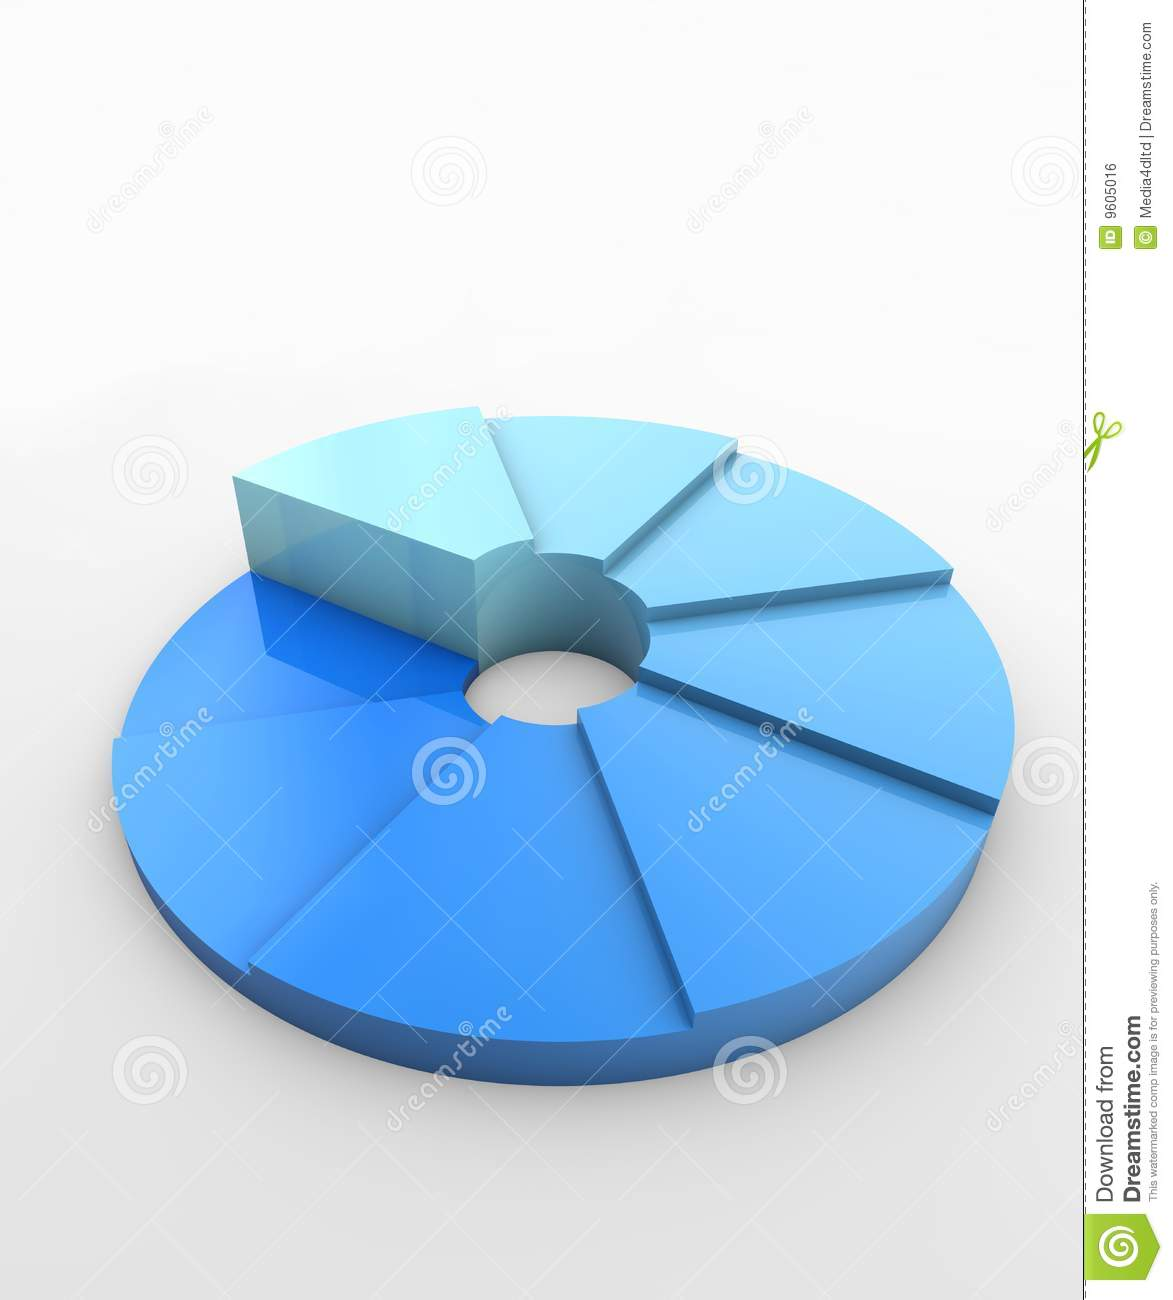 Blue Pie Chart Royalty Free Stock Image - Image: 9605016